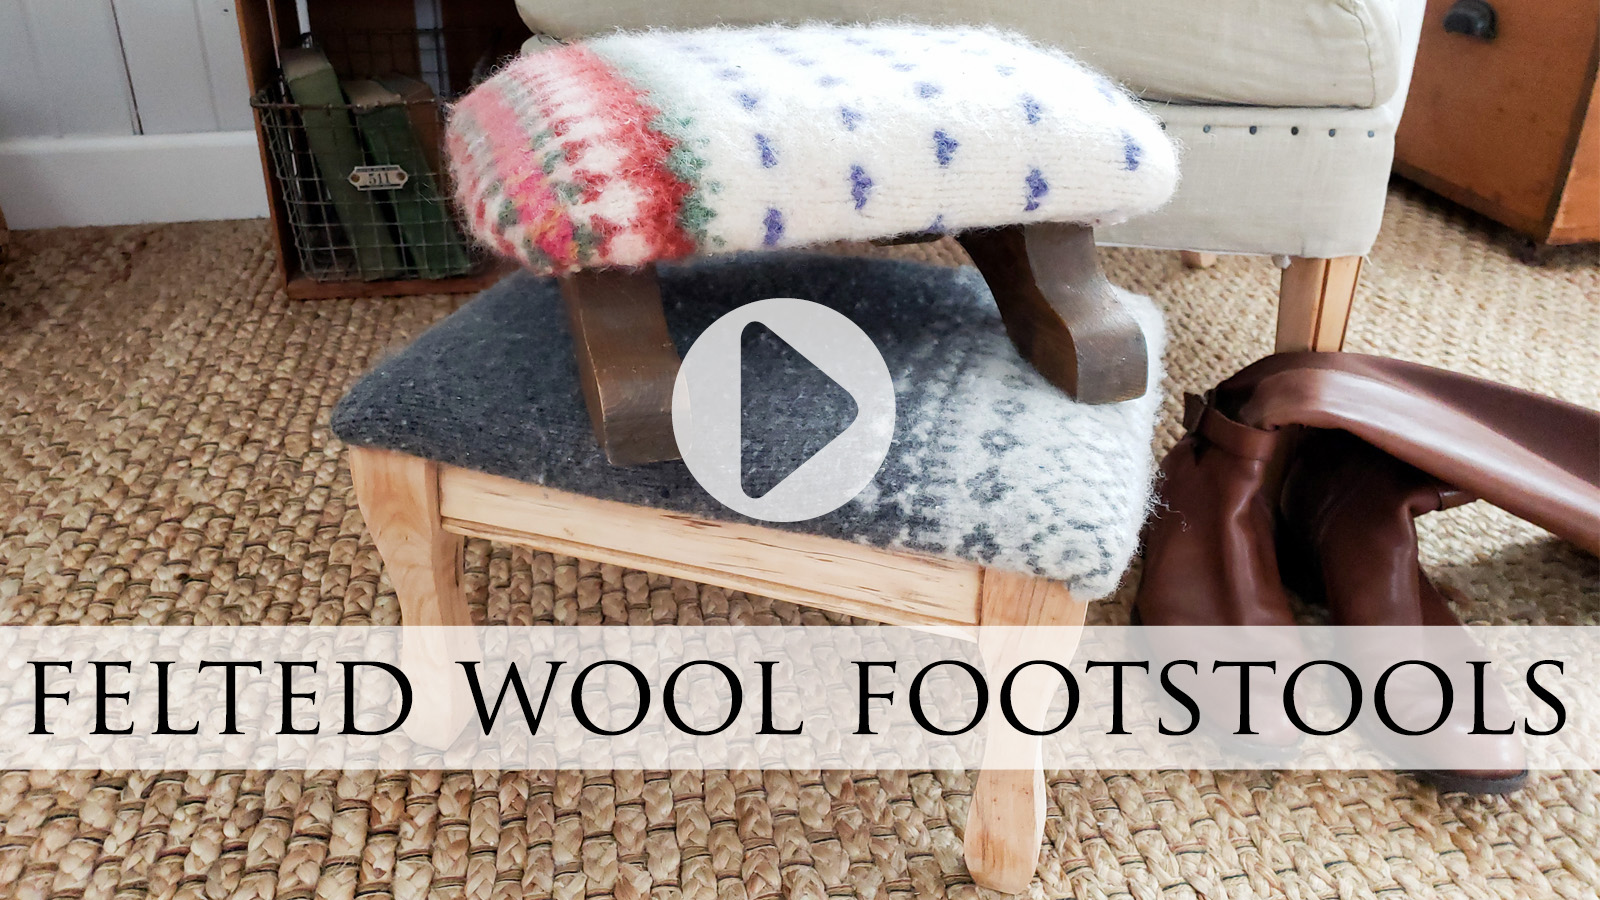 DIY Felted Wool Footstools Video Tutorial by Larissa of Prodigal Pieces | prodigalpieces.com #prodigalpieces #diy #home #furniture #homedecor